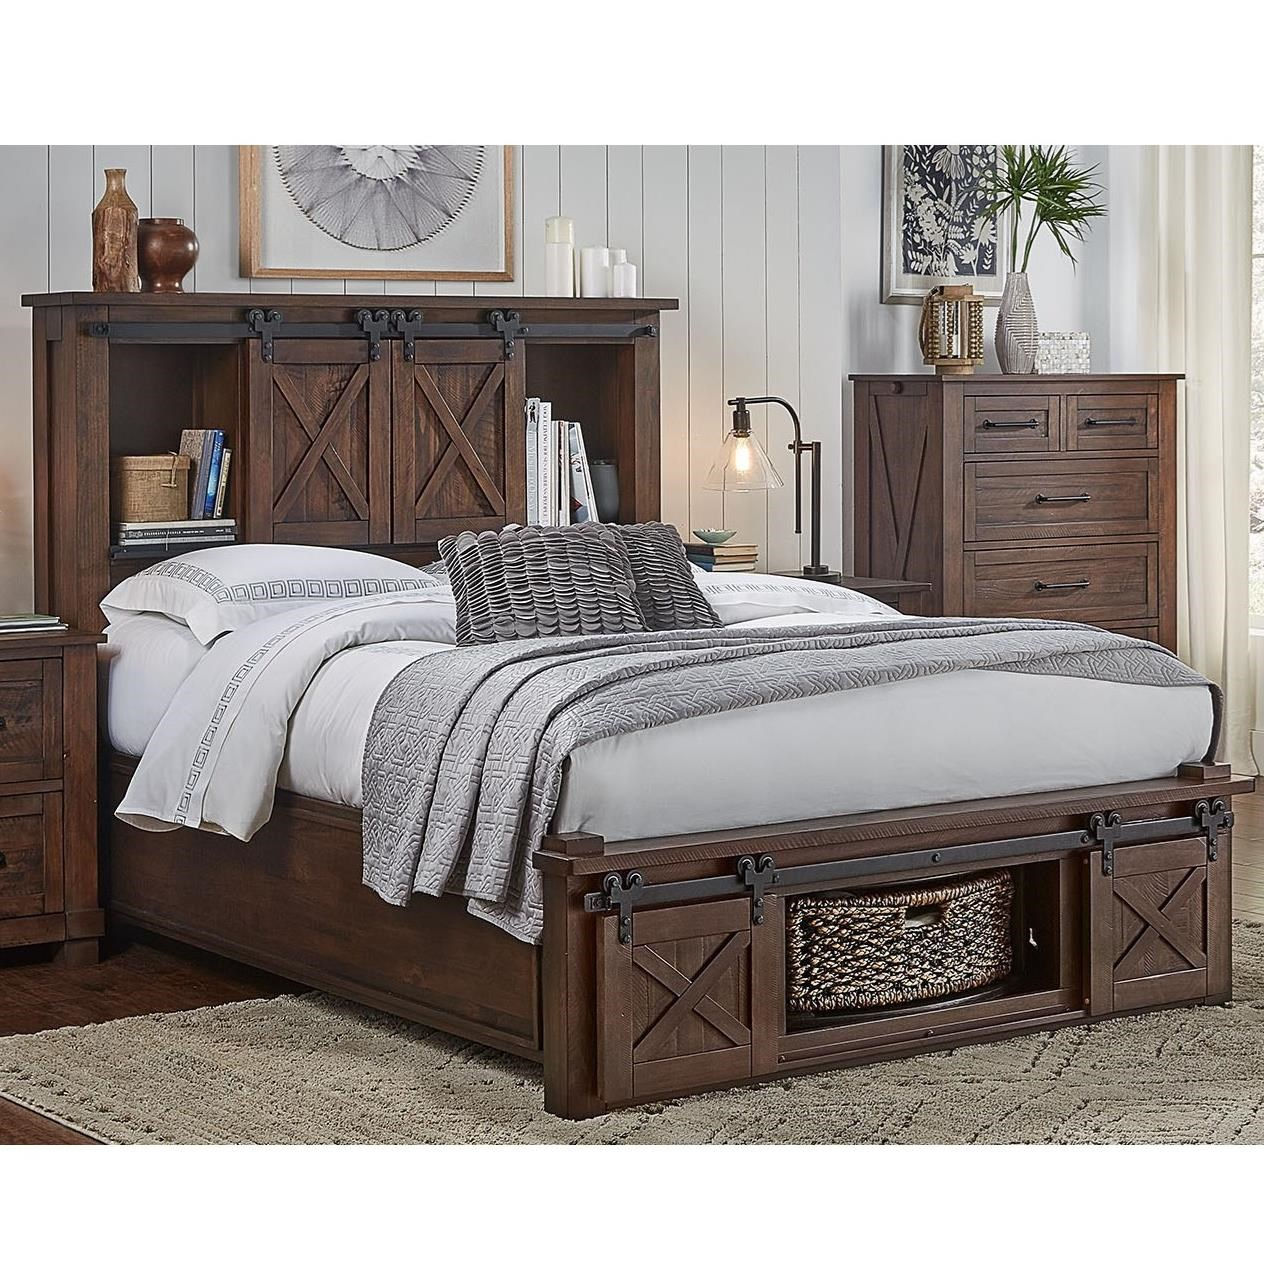 Aamerica Sun Valley California King Bed With Rotating Storage Lindy S Furniture Company Panel Beds